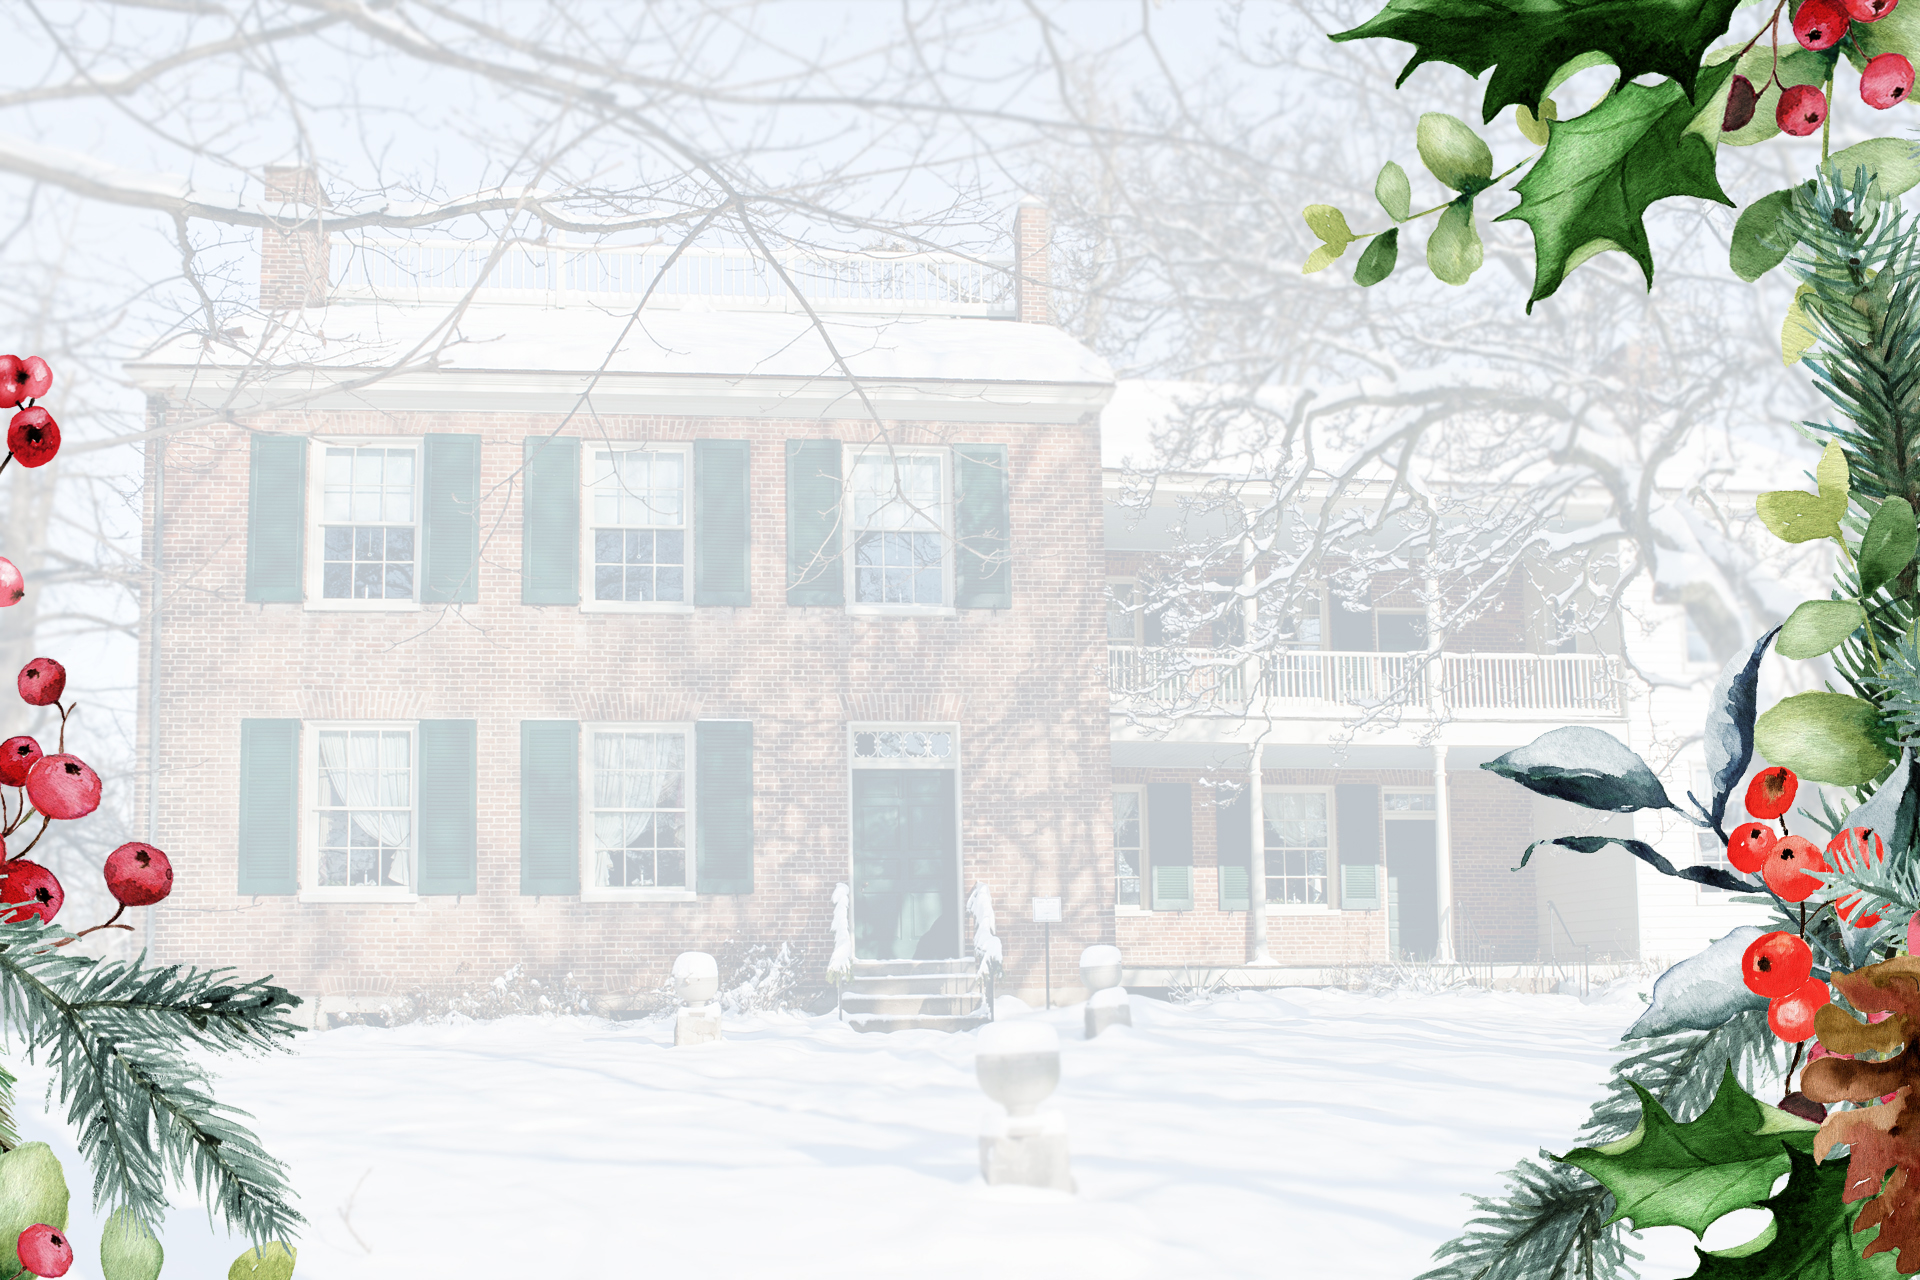 A ghosted images of the exterior of the Wylie House covered in snow.  A festive border has been applied